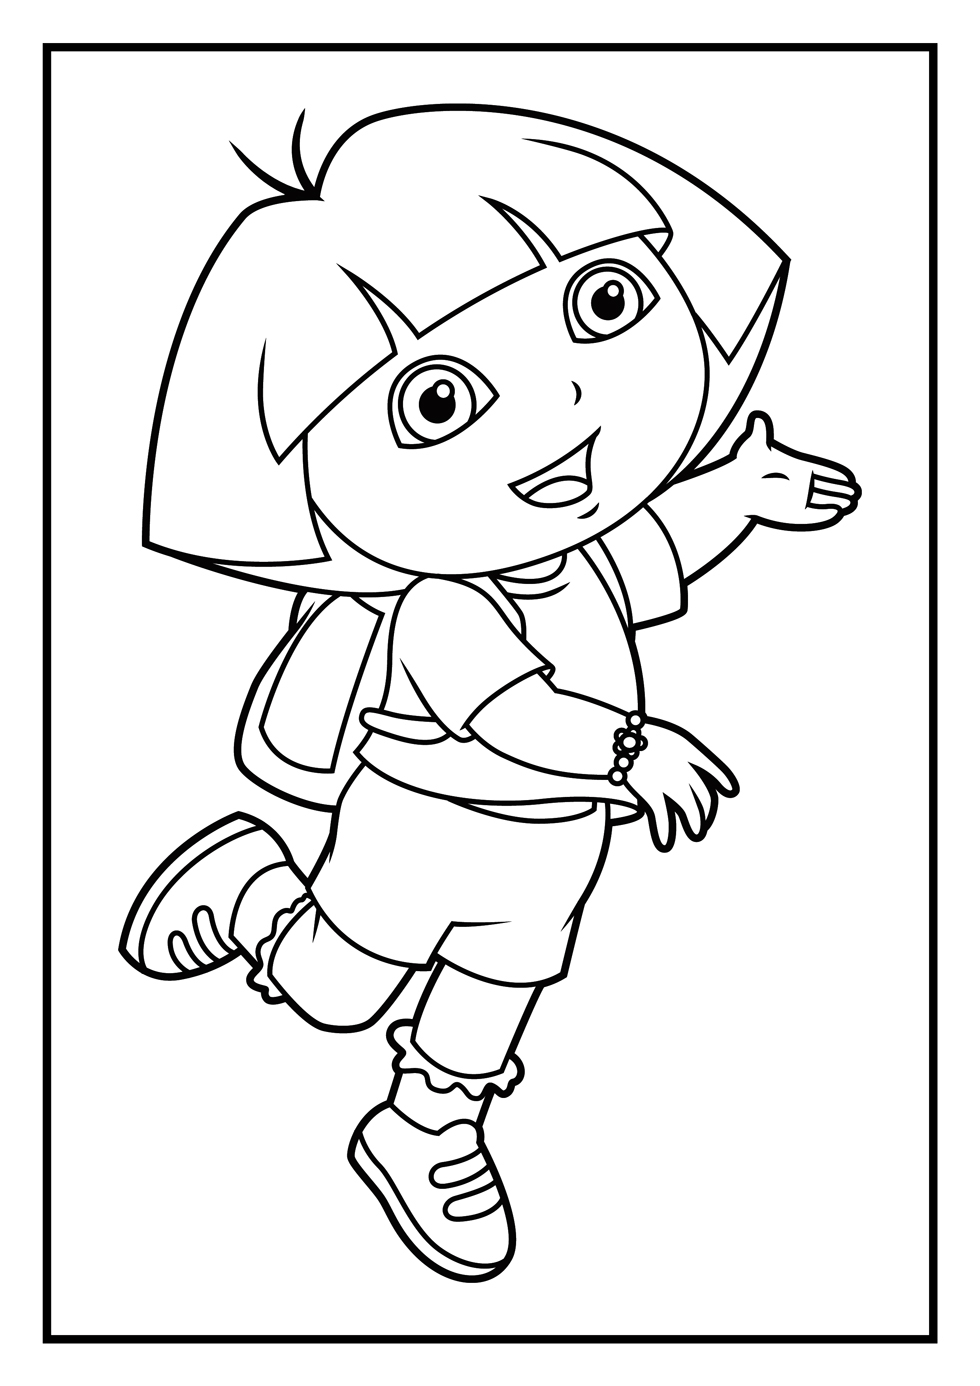 coloring pages dora and friends image cartoon dora the explorer and friends coloring dora friends coloring and pages